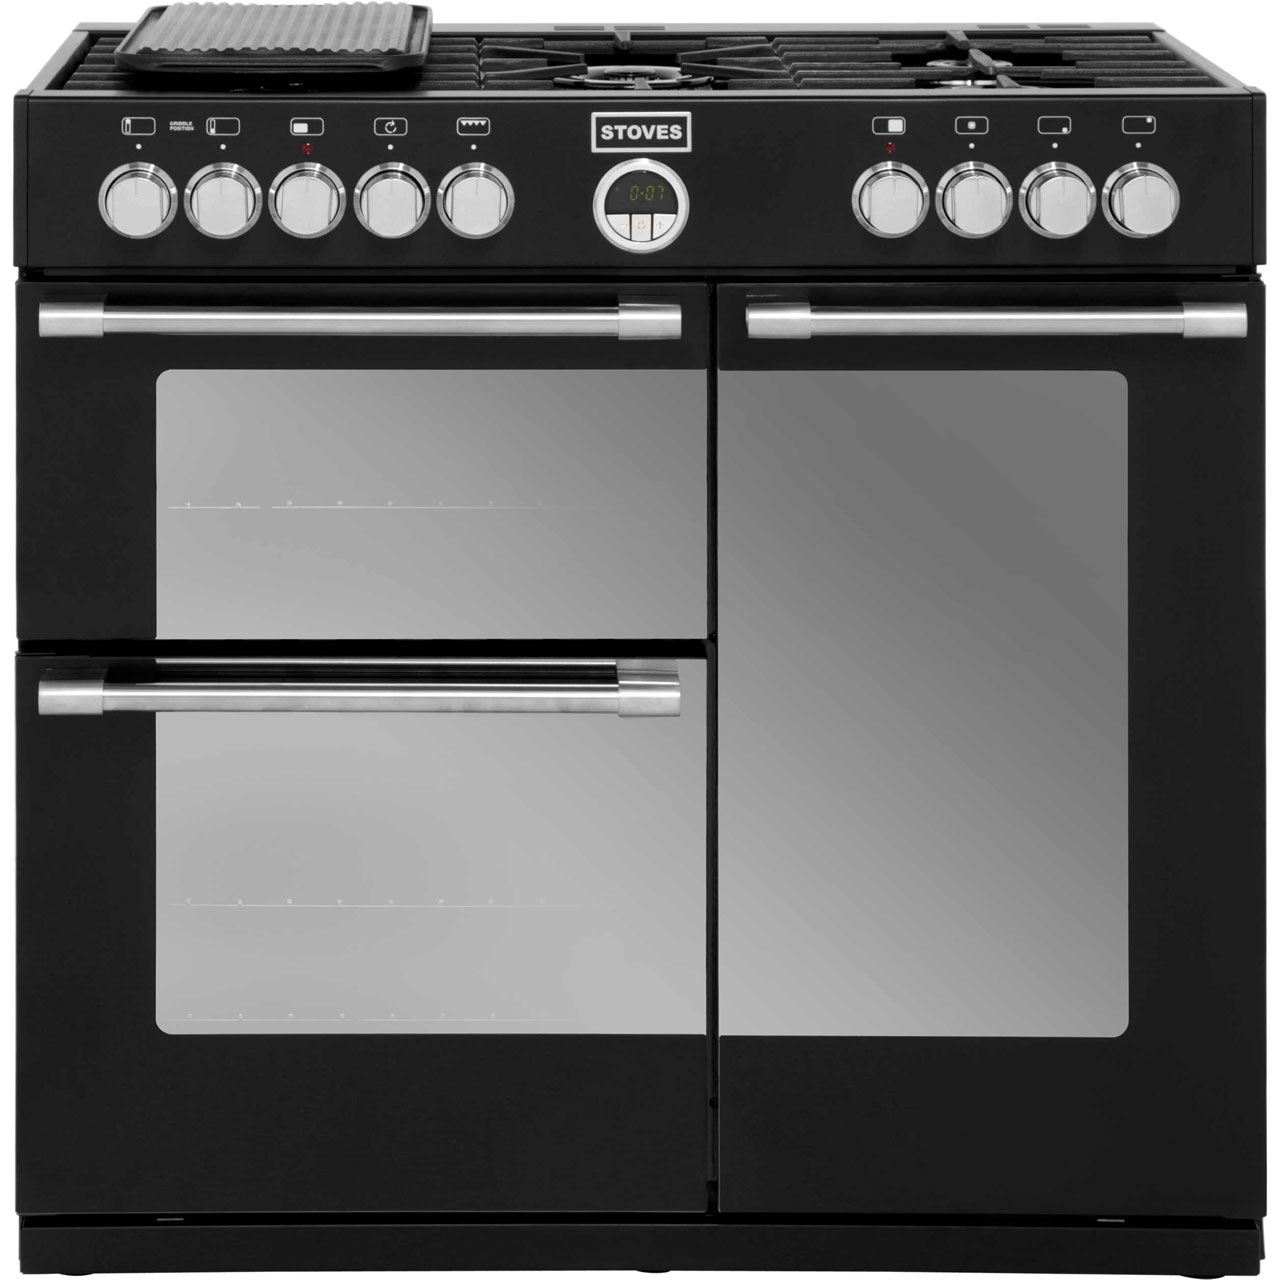 Cheap Stoves Buy Cheap Stoves Cooker Compare Cookers And Ovens Prices